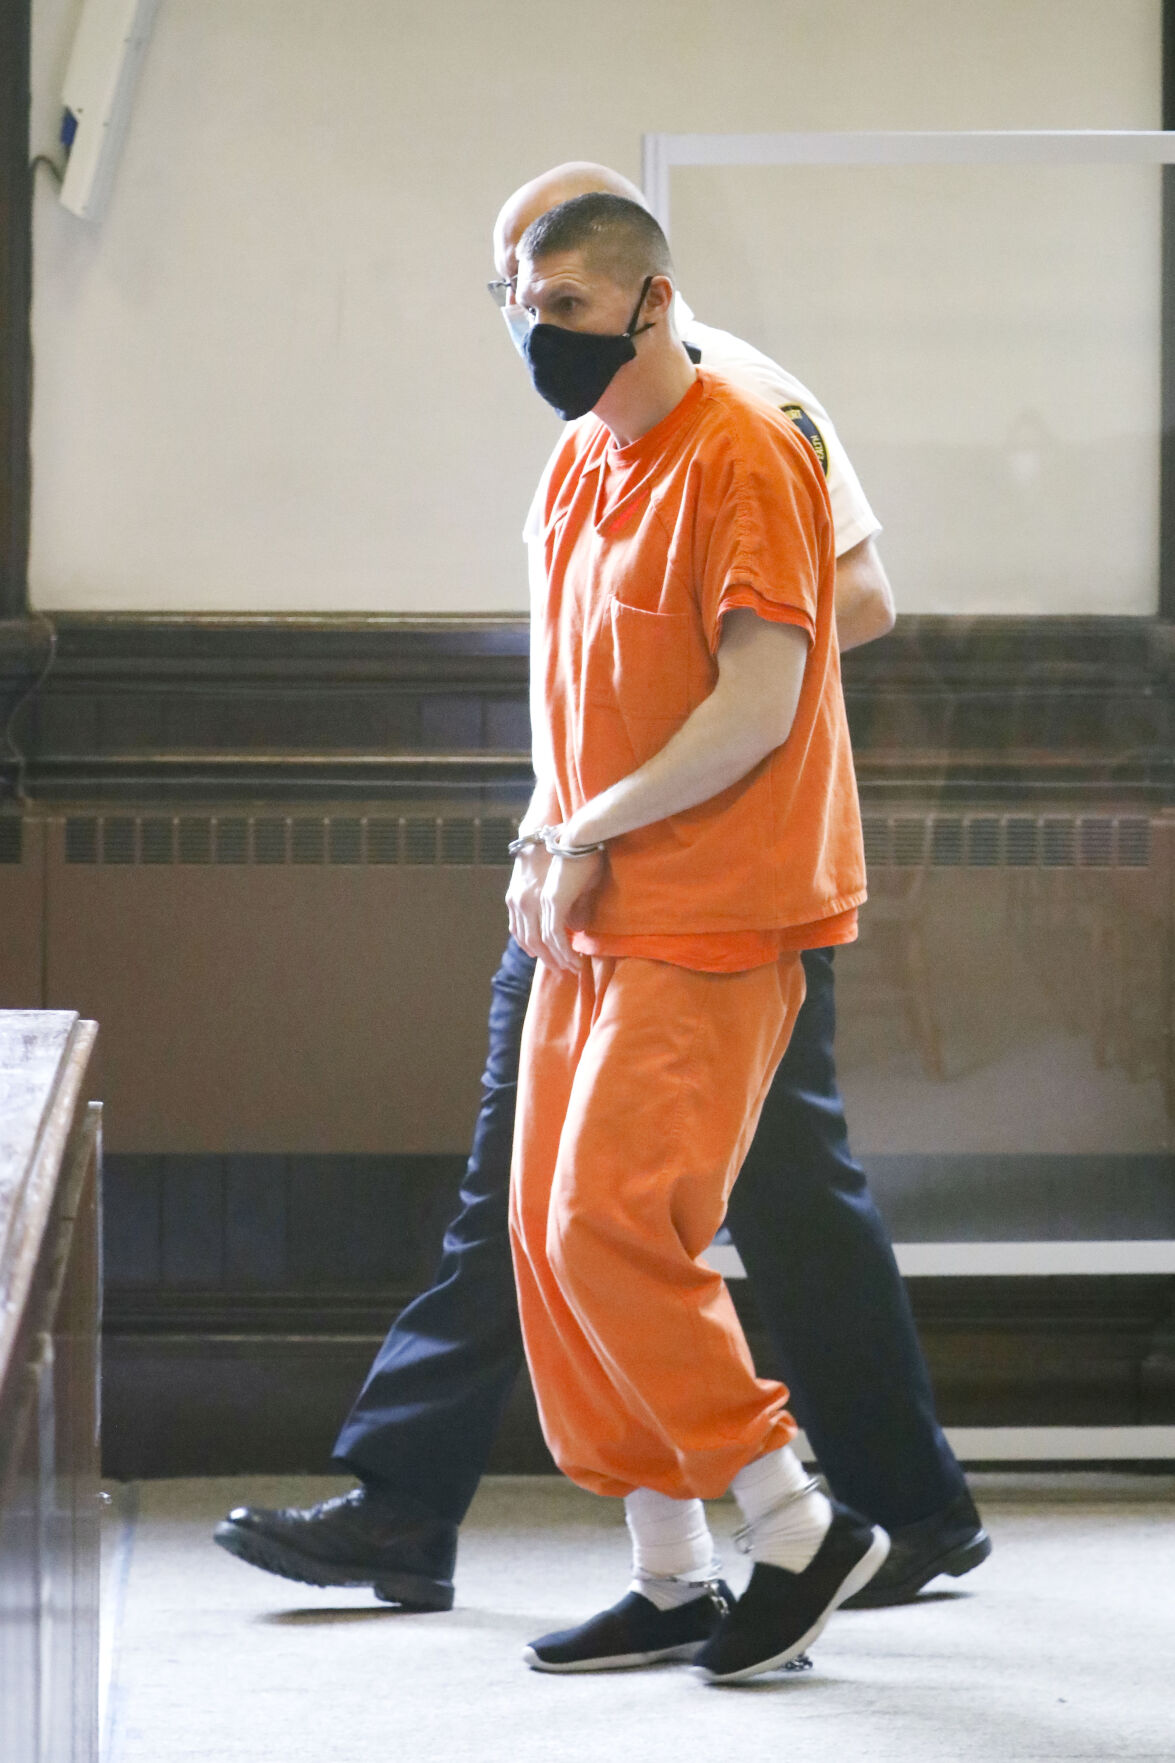 Edward Jennings led into court in orange jumpsuit and handcuffs